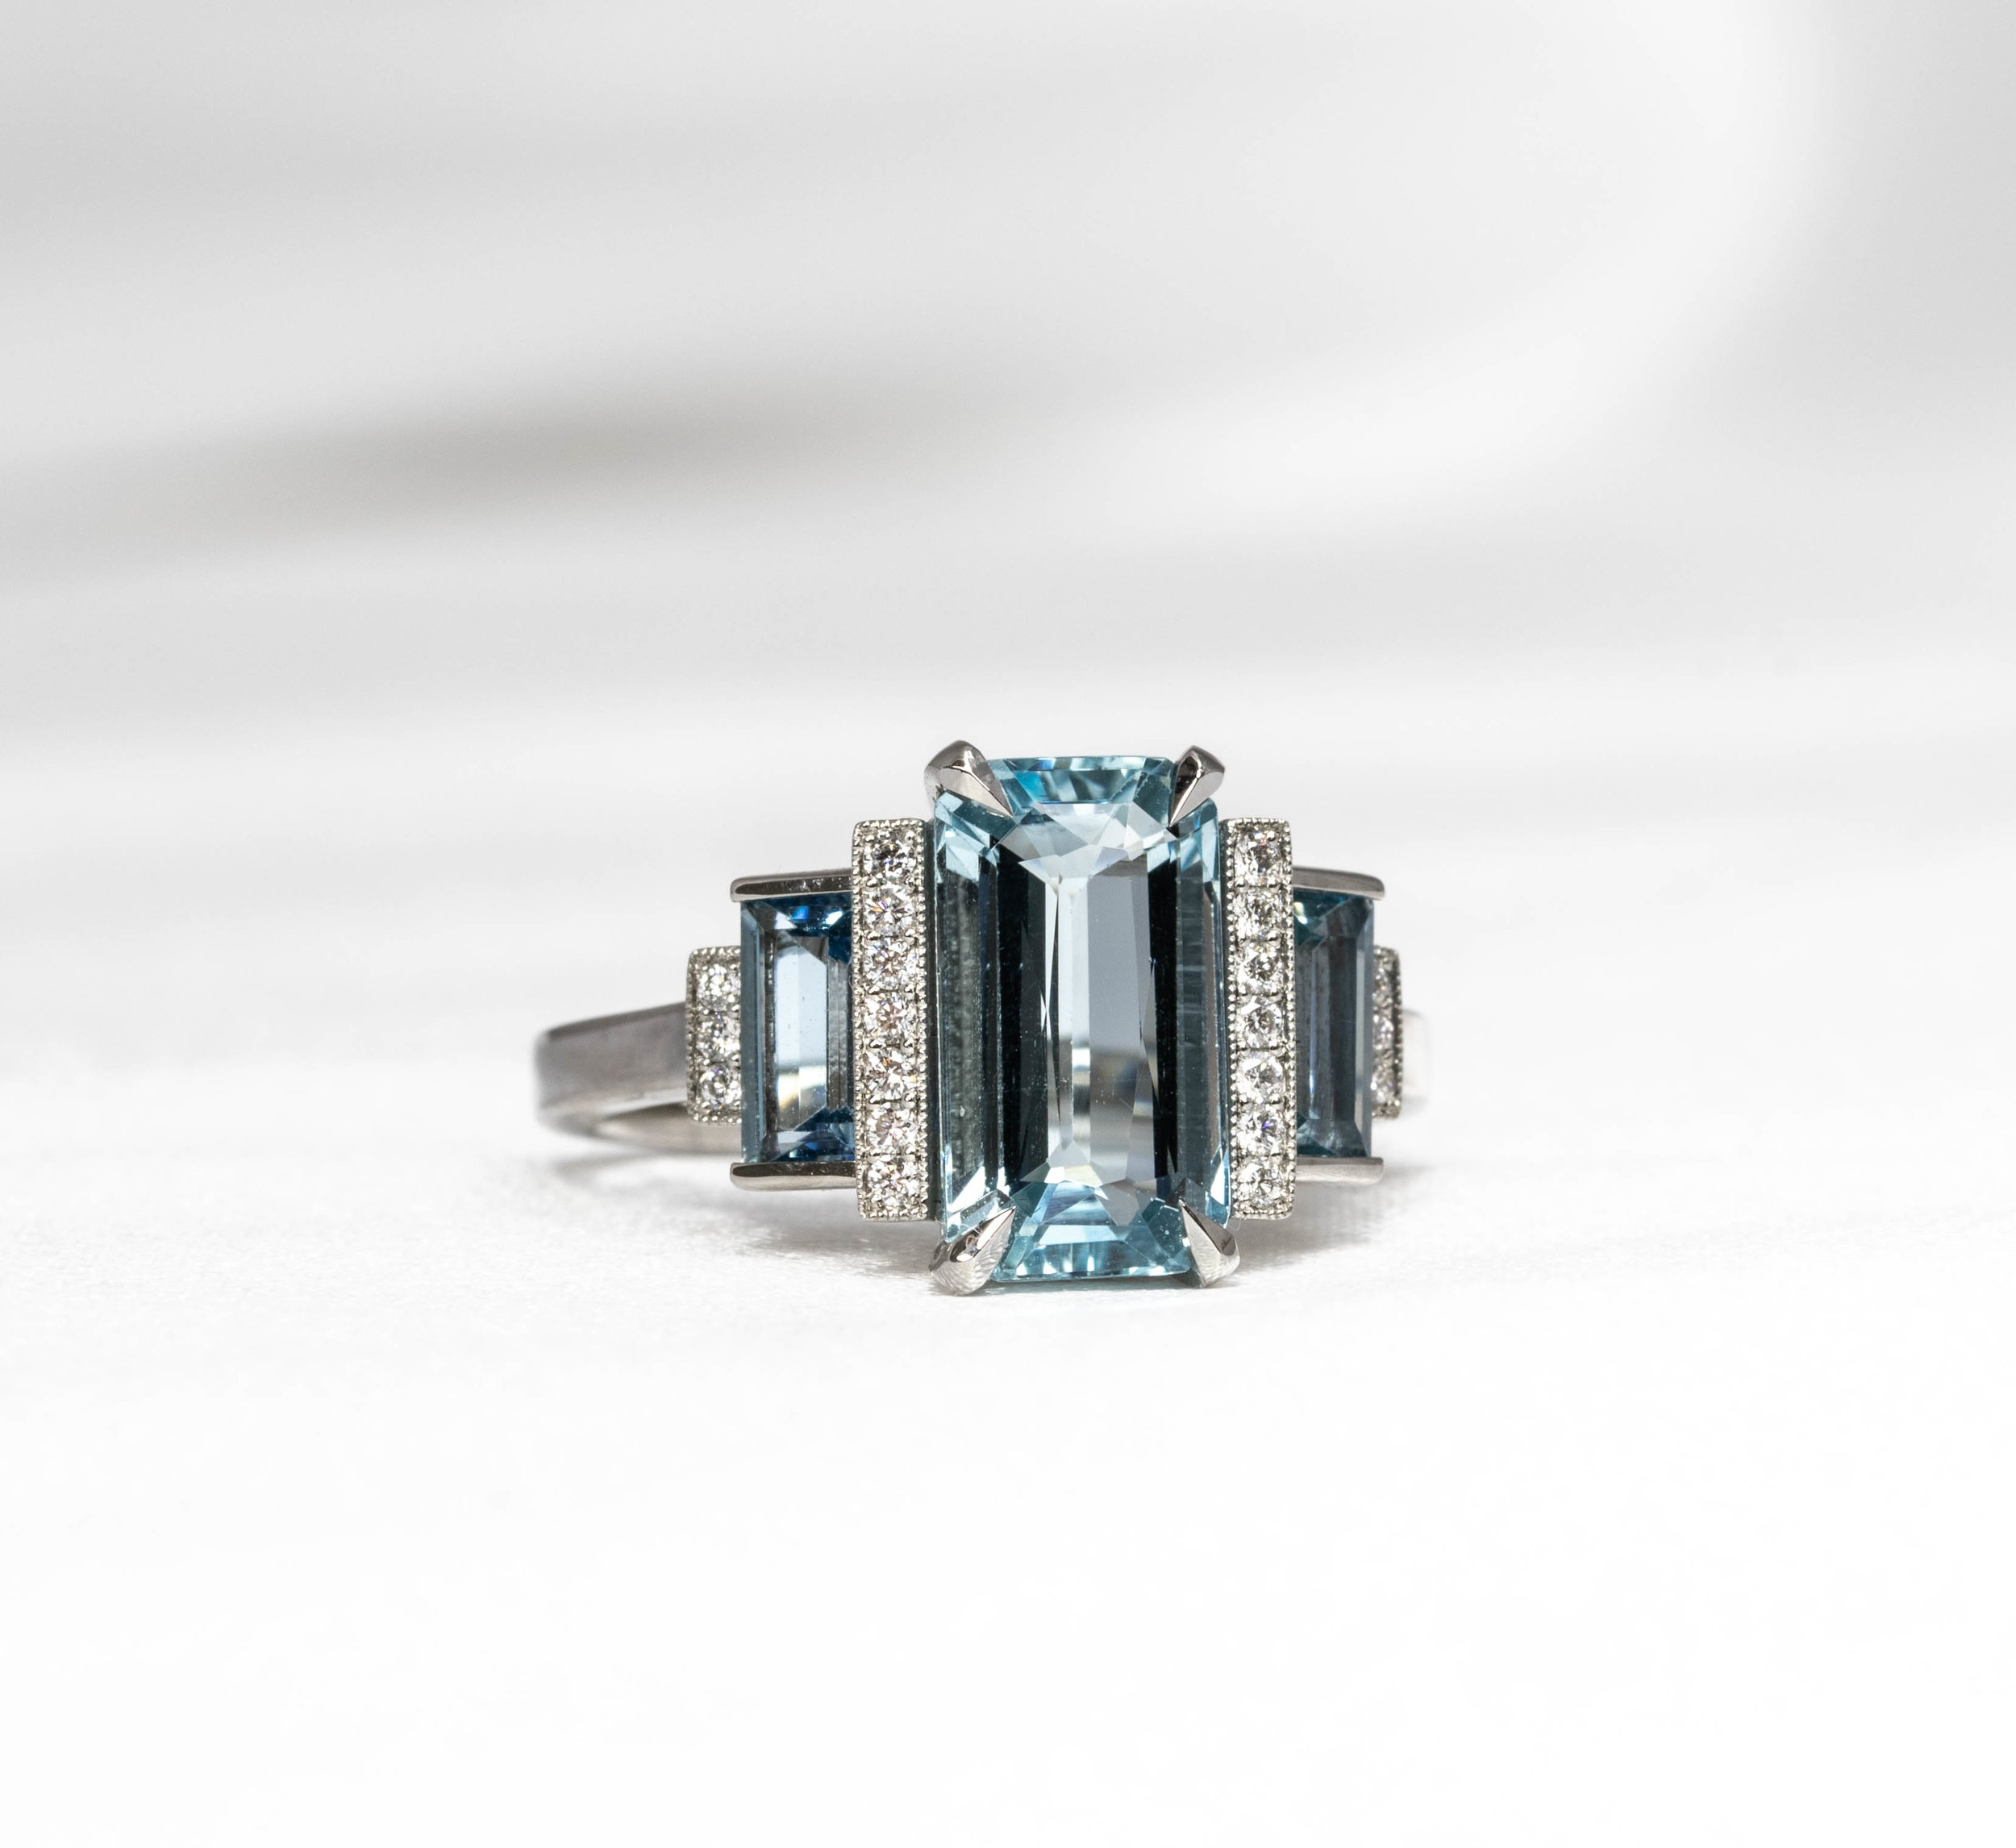 Aquamarine and grain set diamond Art Deco style stepped ring. Made in Chichester, England.